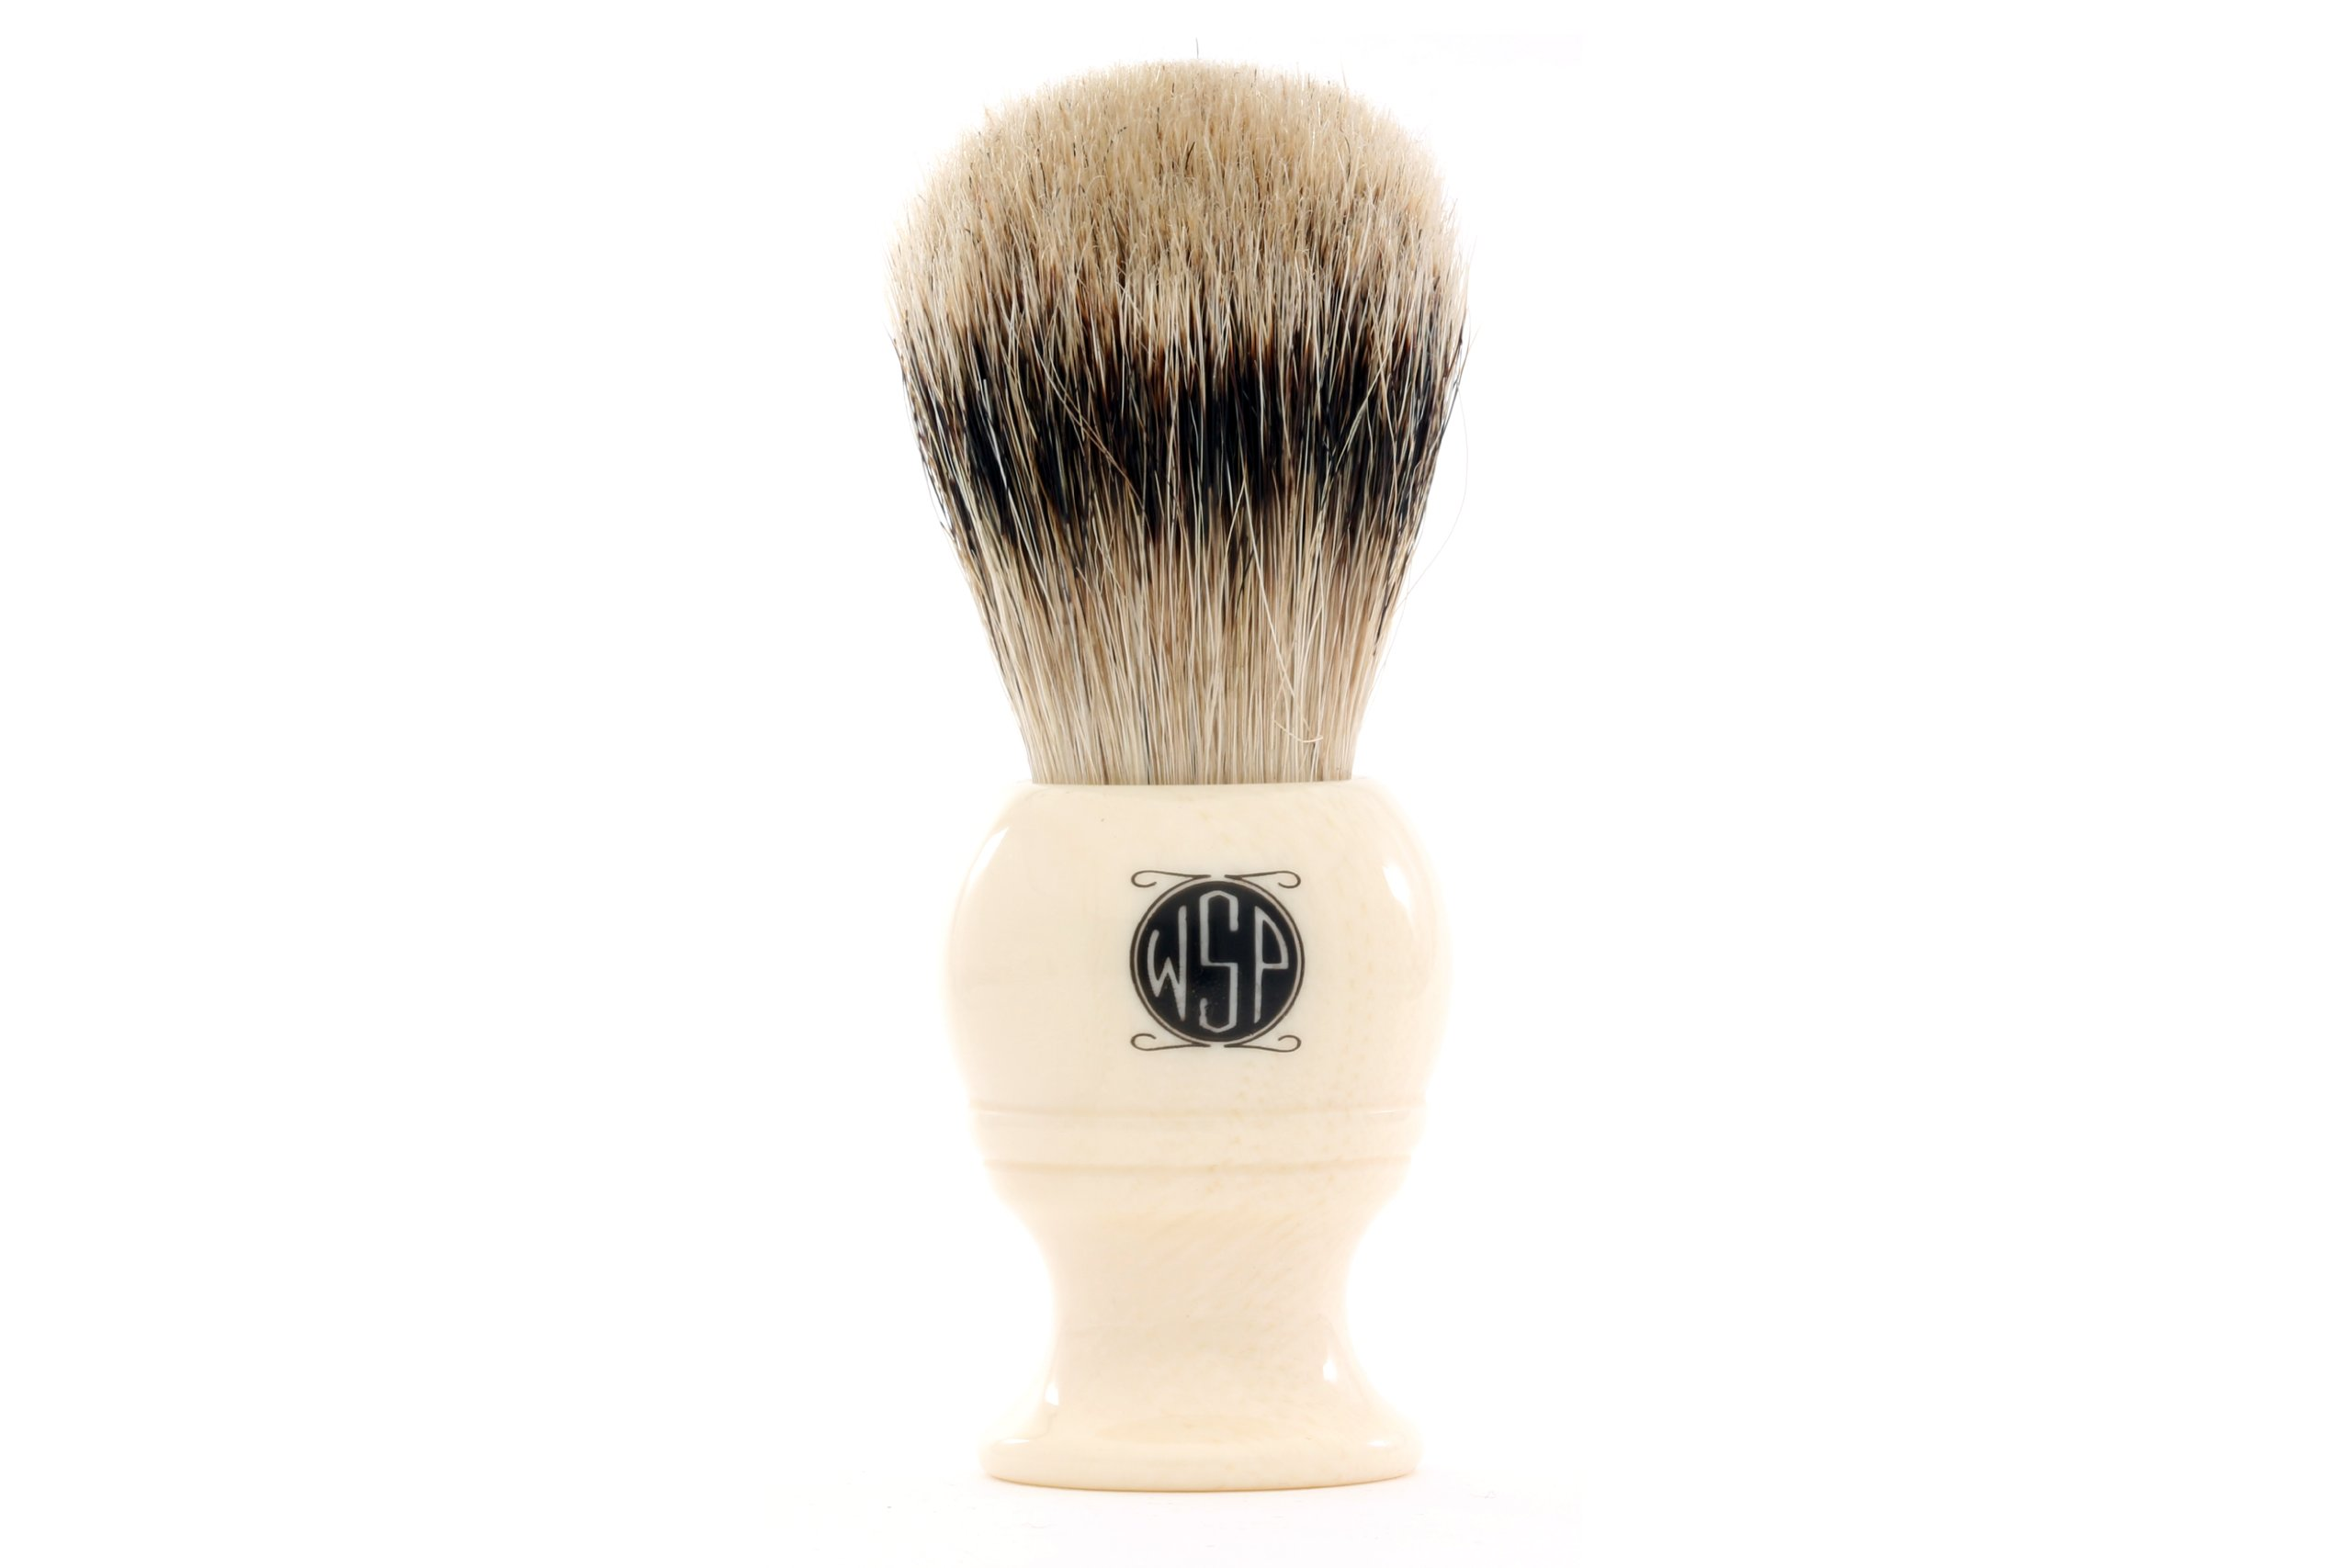 High Density Premium Silvertip Badger Shaving Brush WSP''Monarch'' by Wet Shaving Products